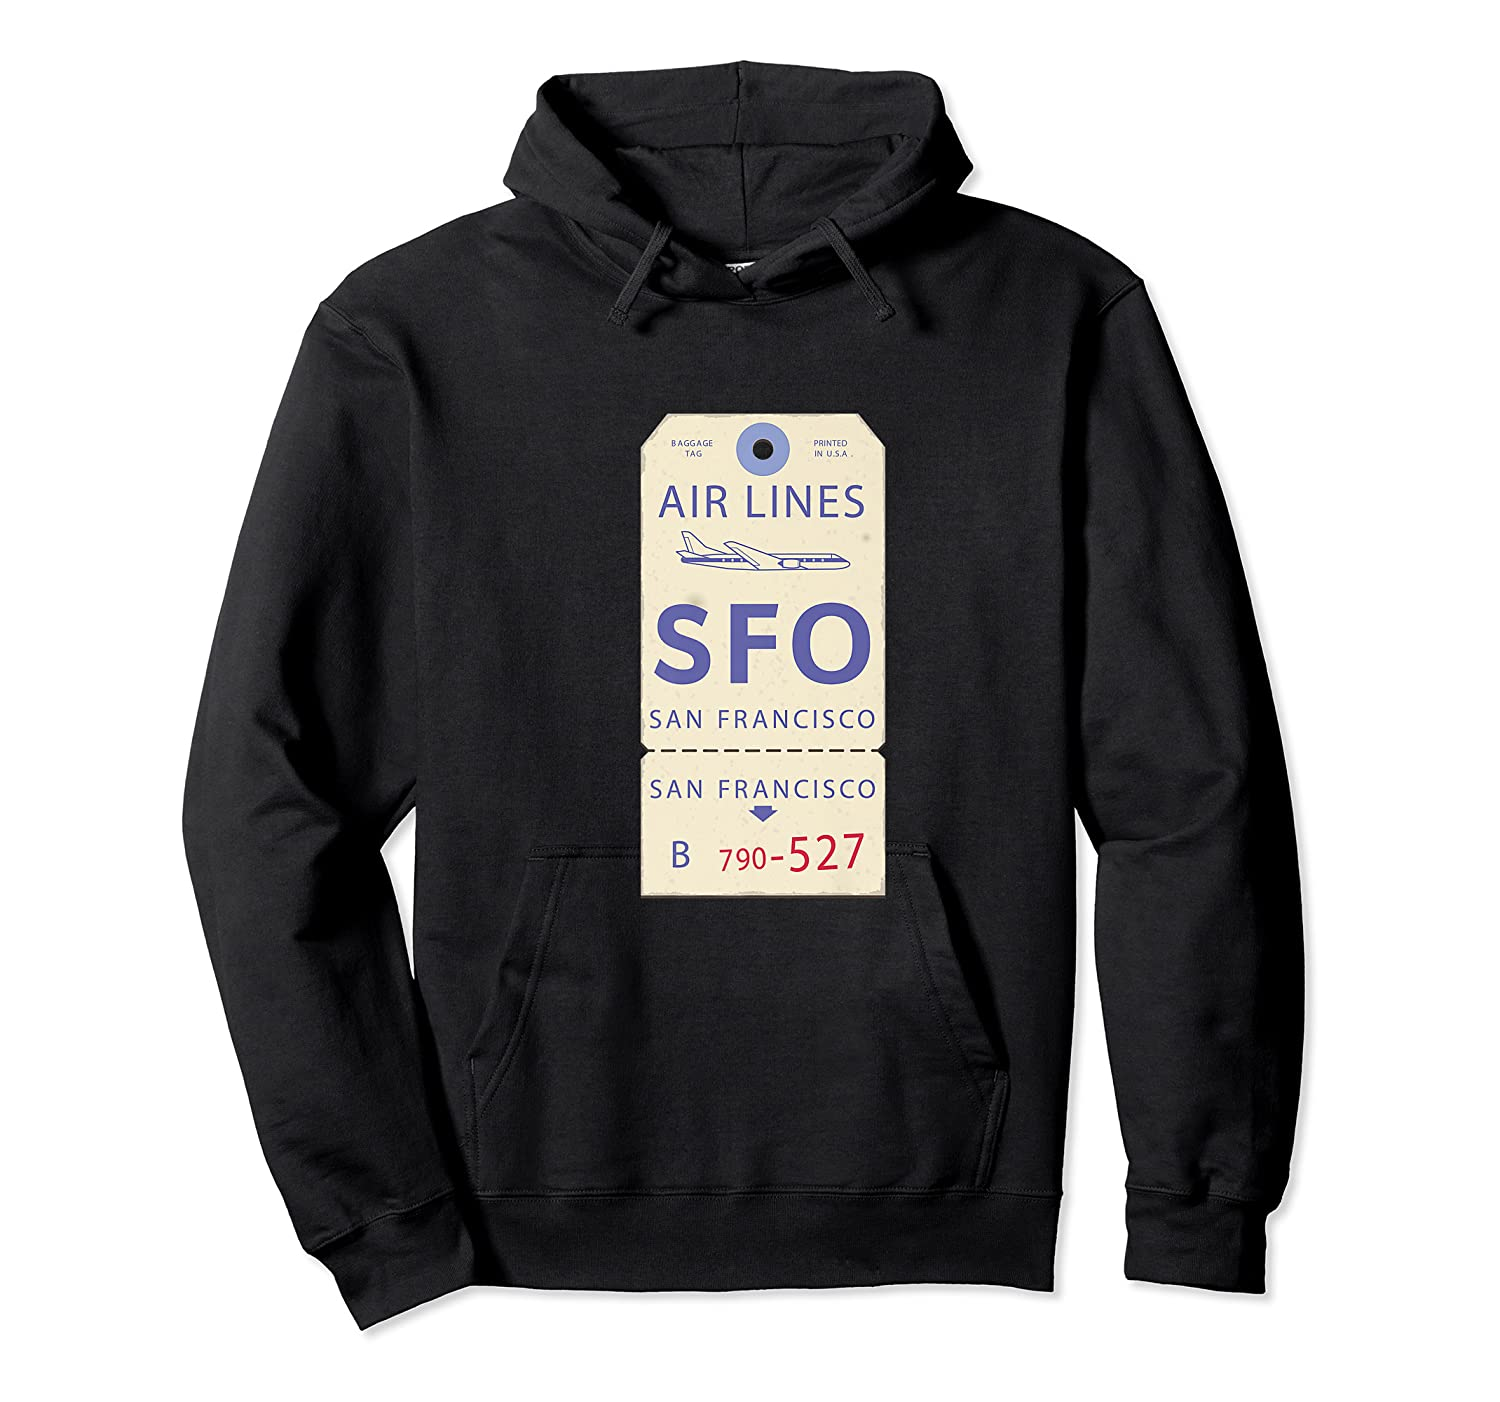 Vintage Baggage Tag For San Francisco Airport Sfo Shirts Unisex Pullover Hoodie